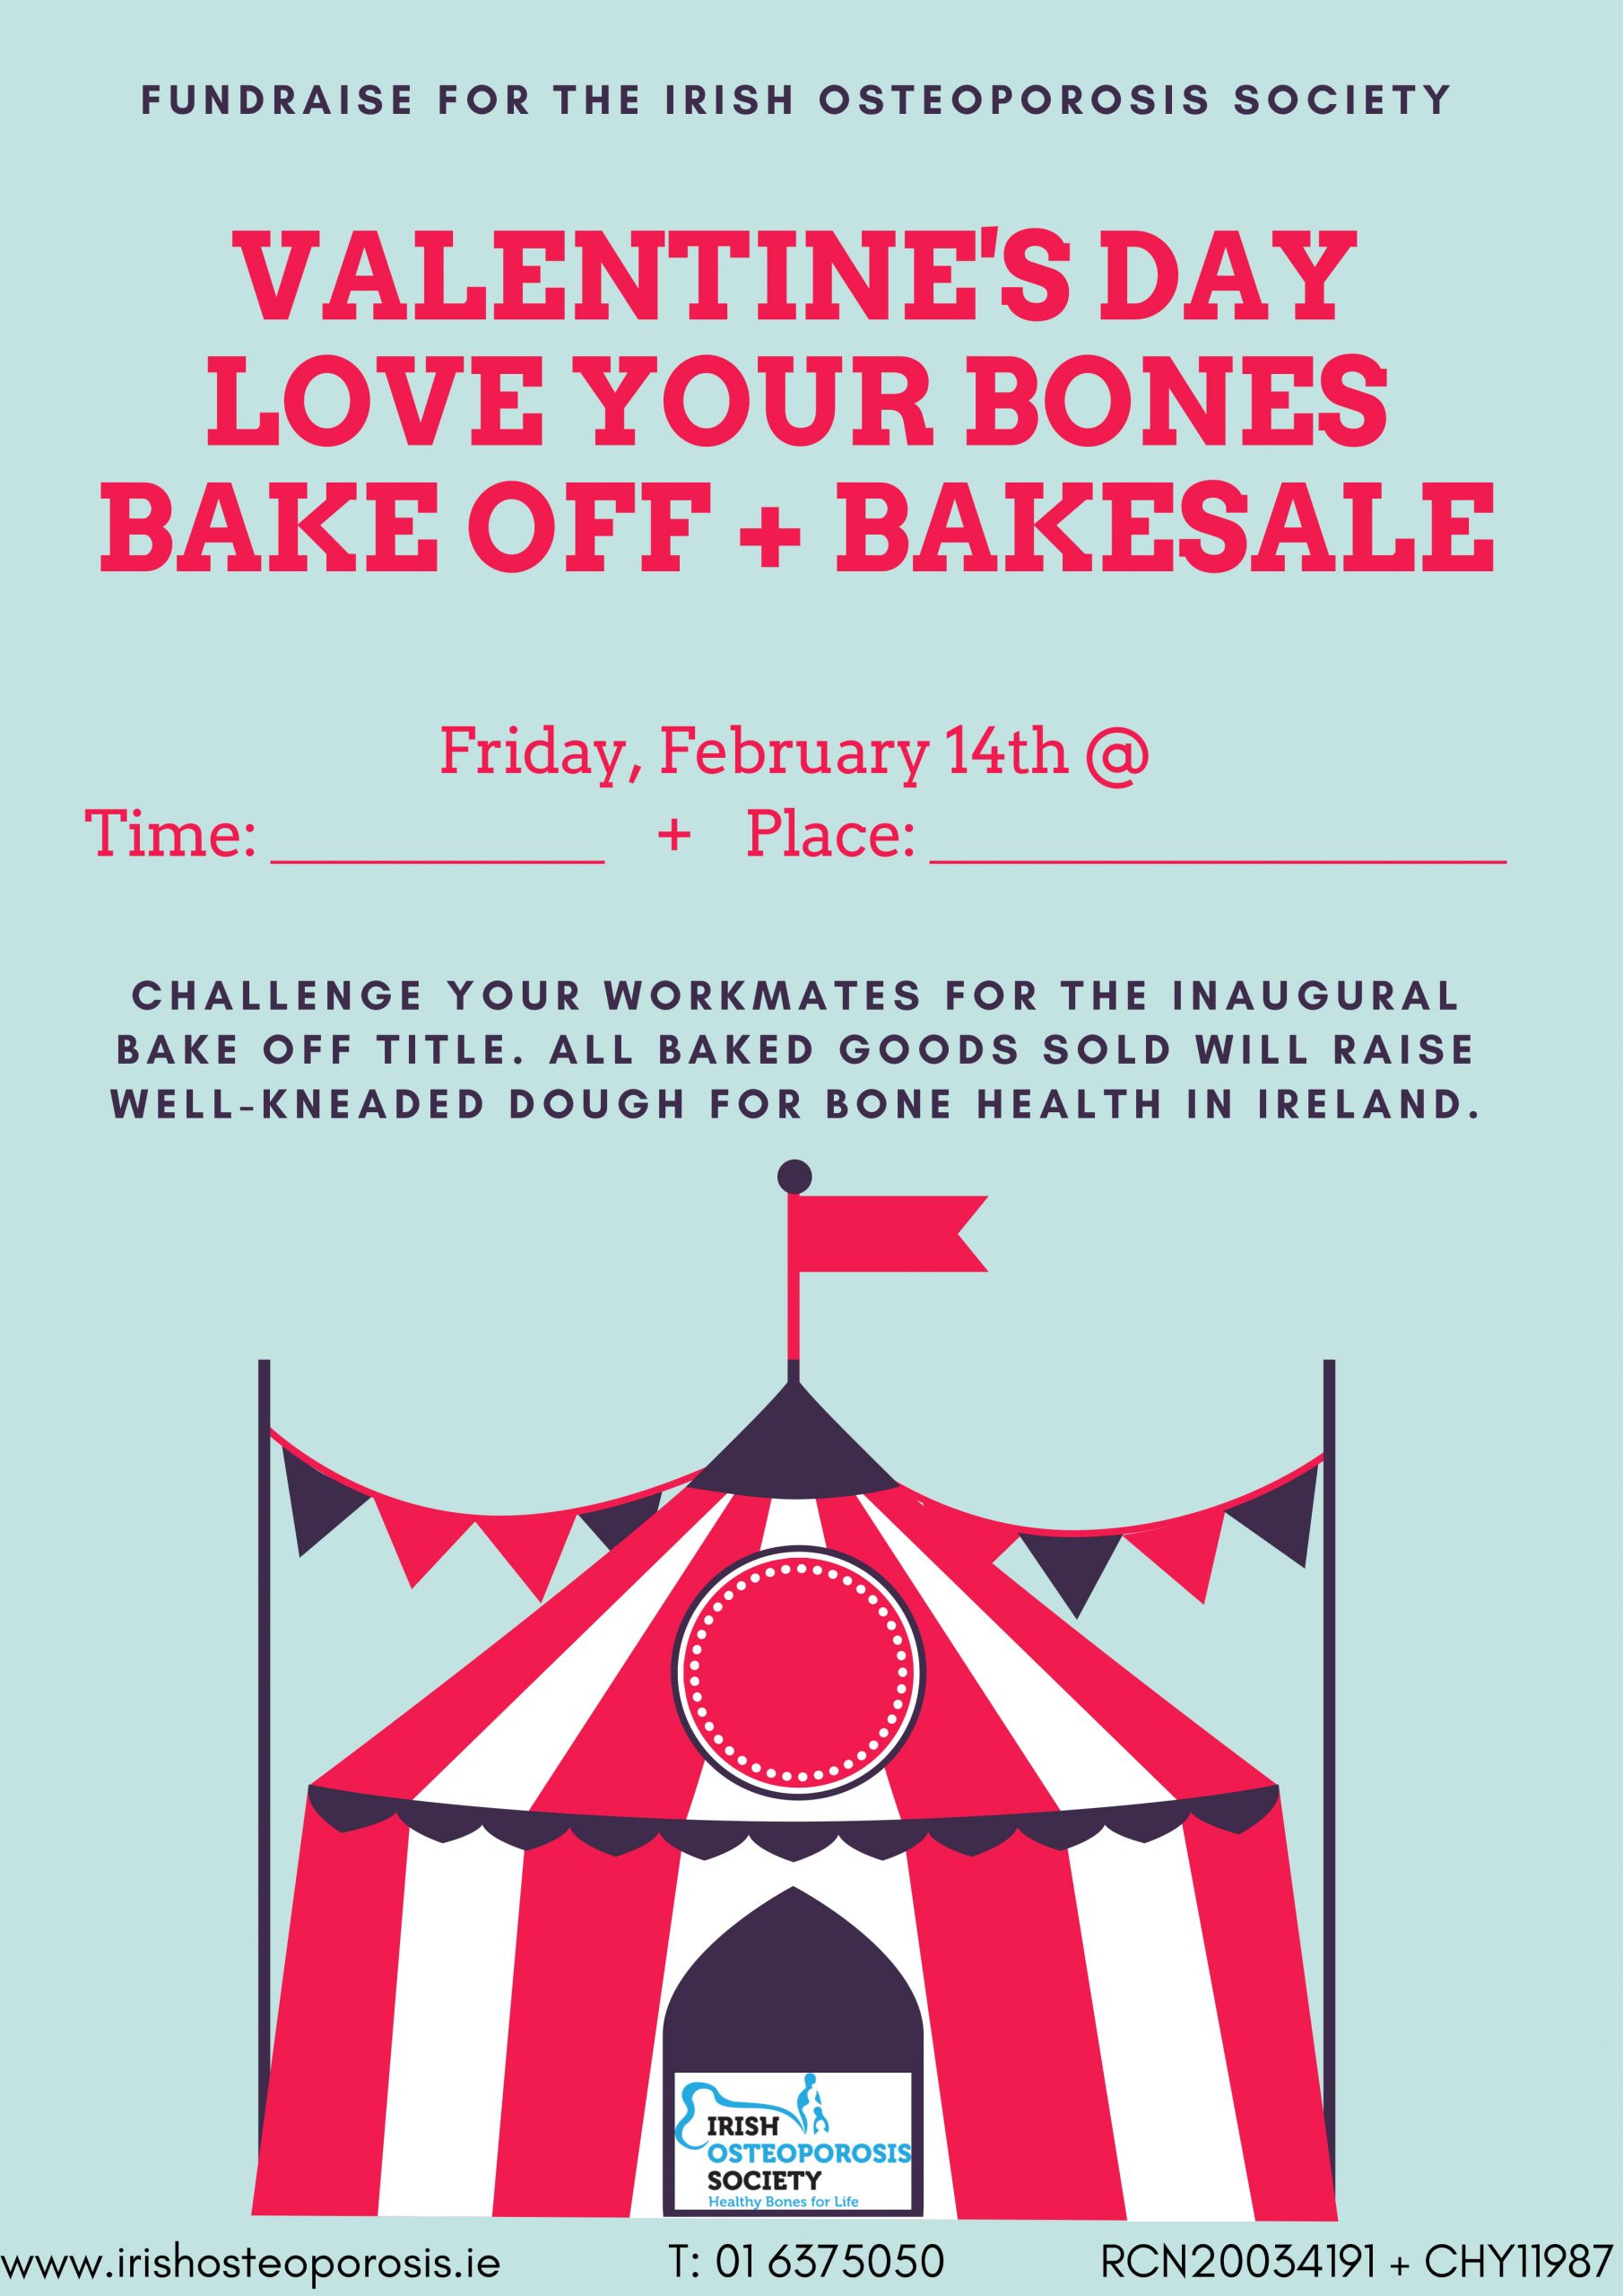 Love Your Bones on Valentine's Day